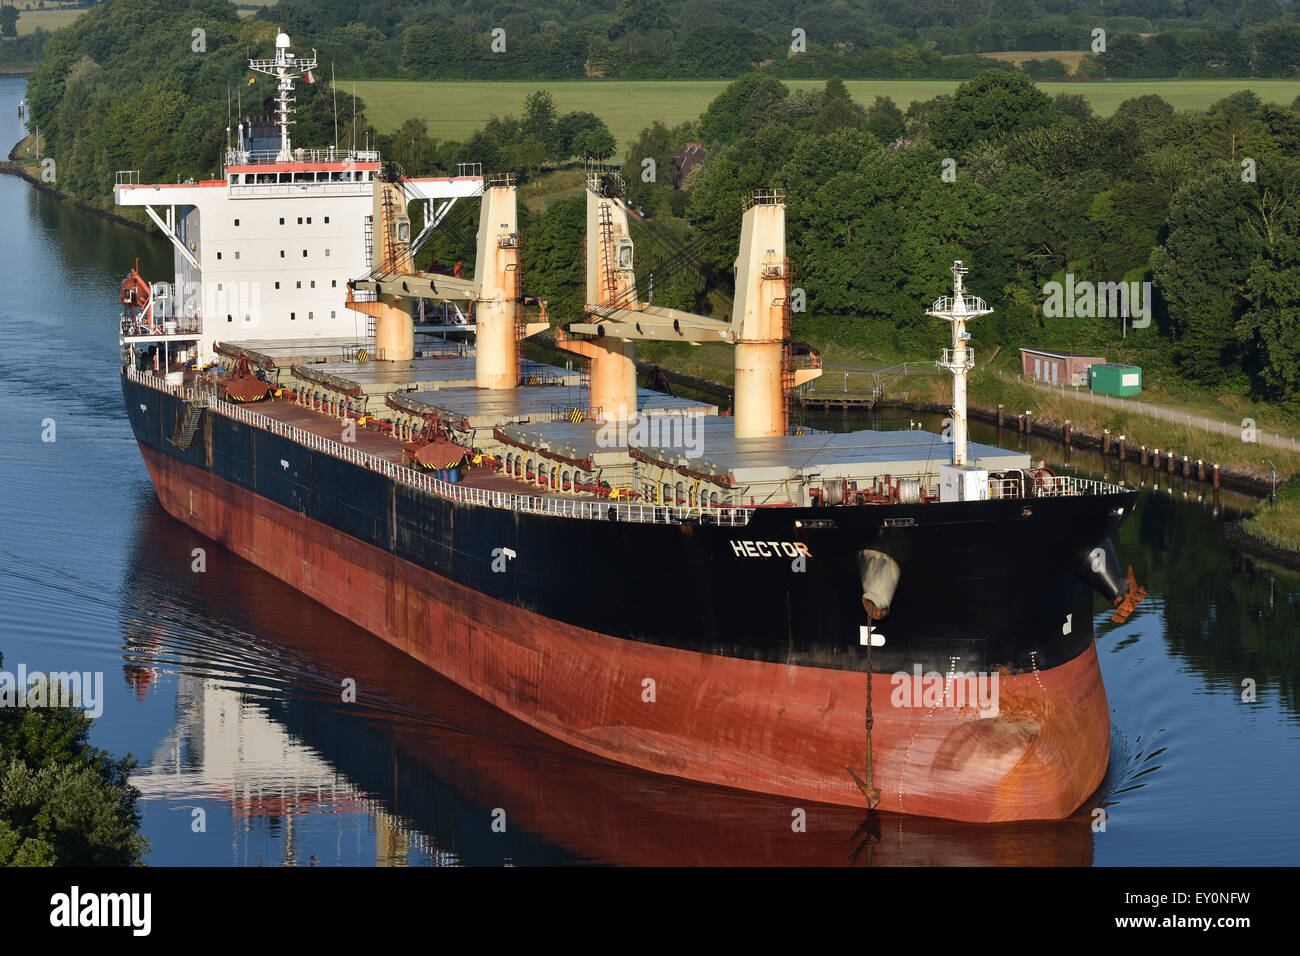 Supramax Bulkcarrier Hector passing the Kiel Canal - Stock Image